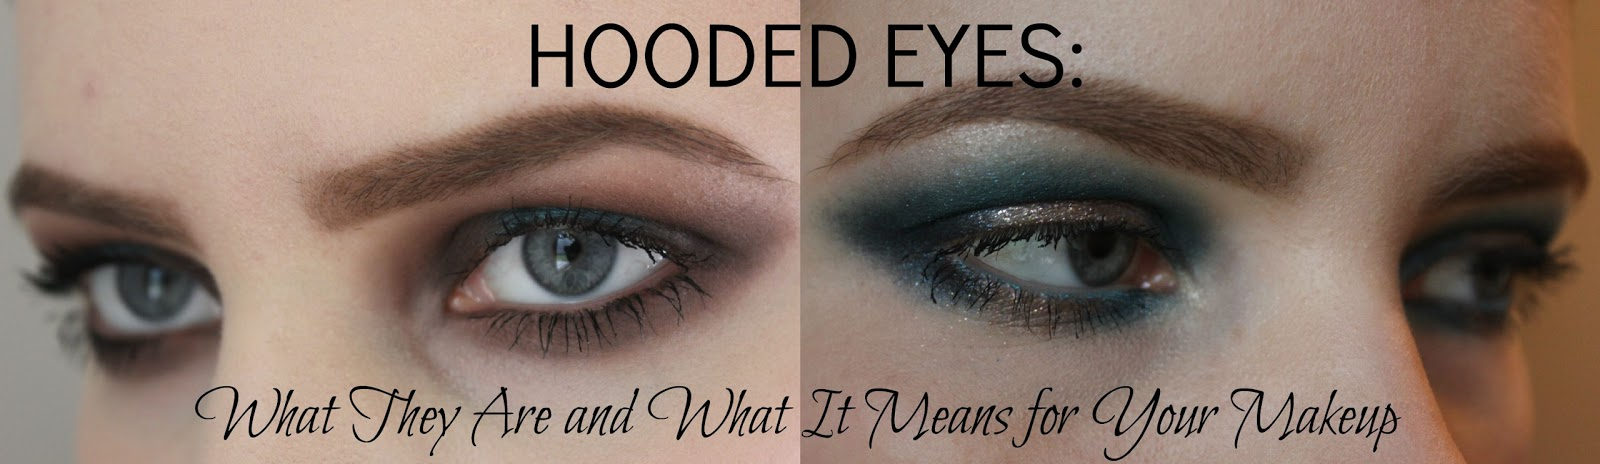 Best Mascara For Hooded Eyes pictures